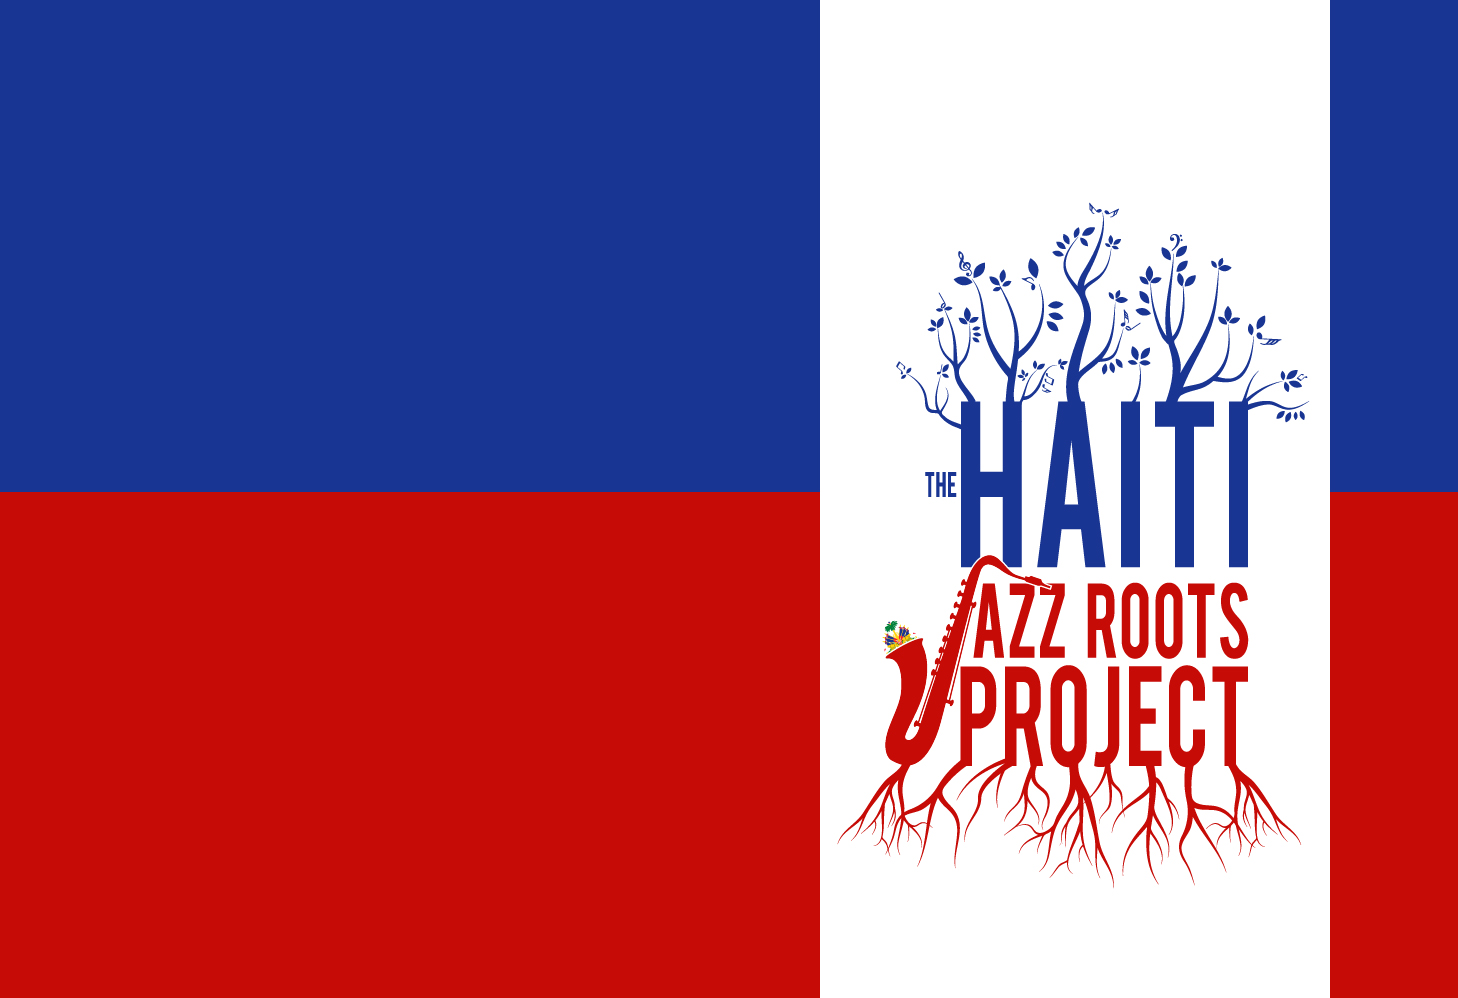 Jazz at MOCA × Haiti JazzRoots Project